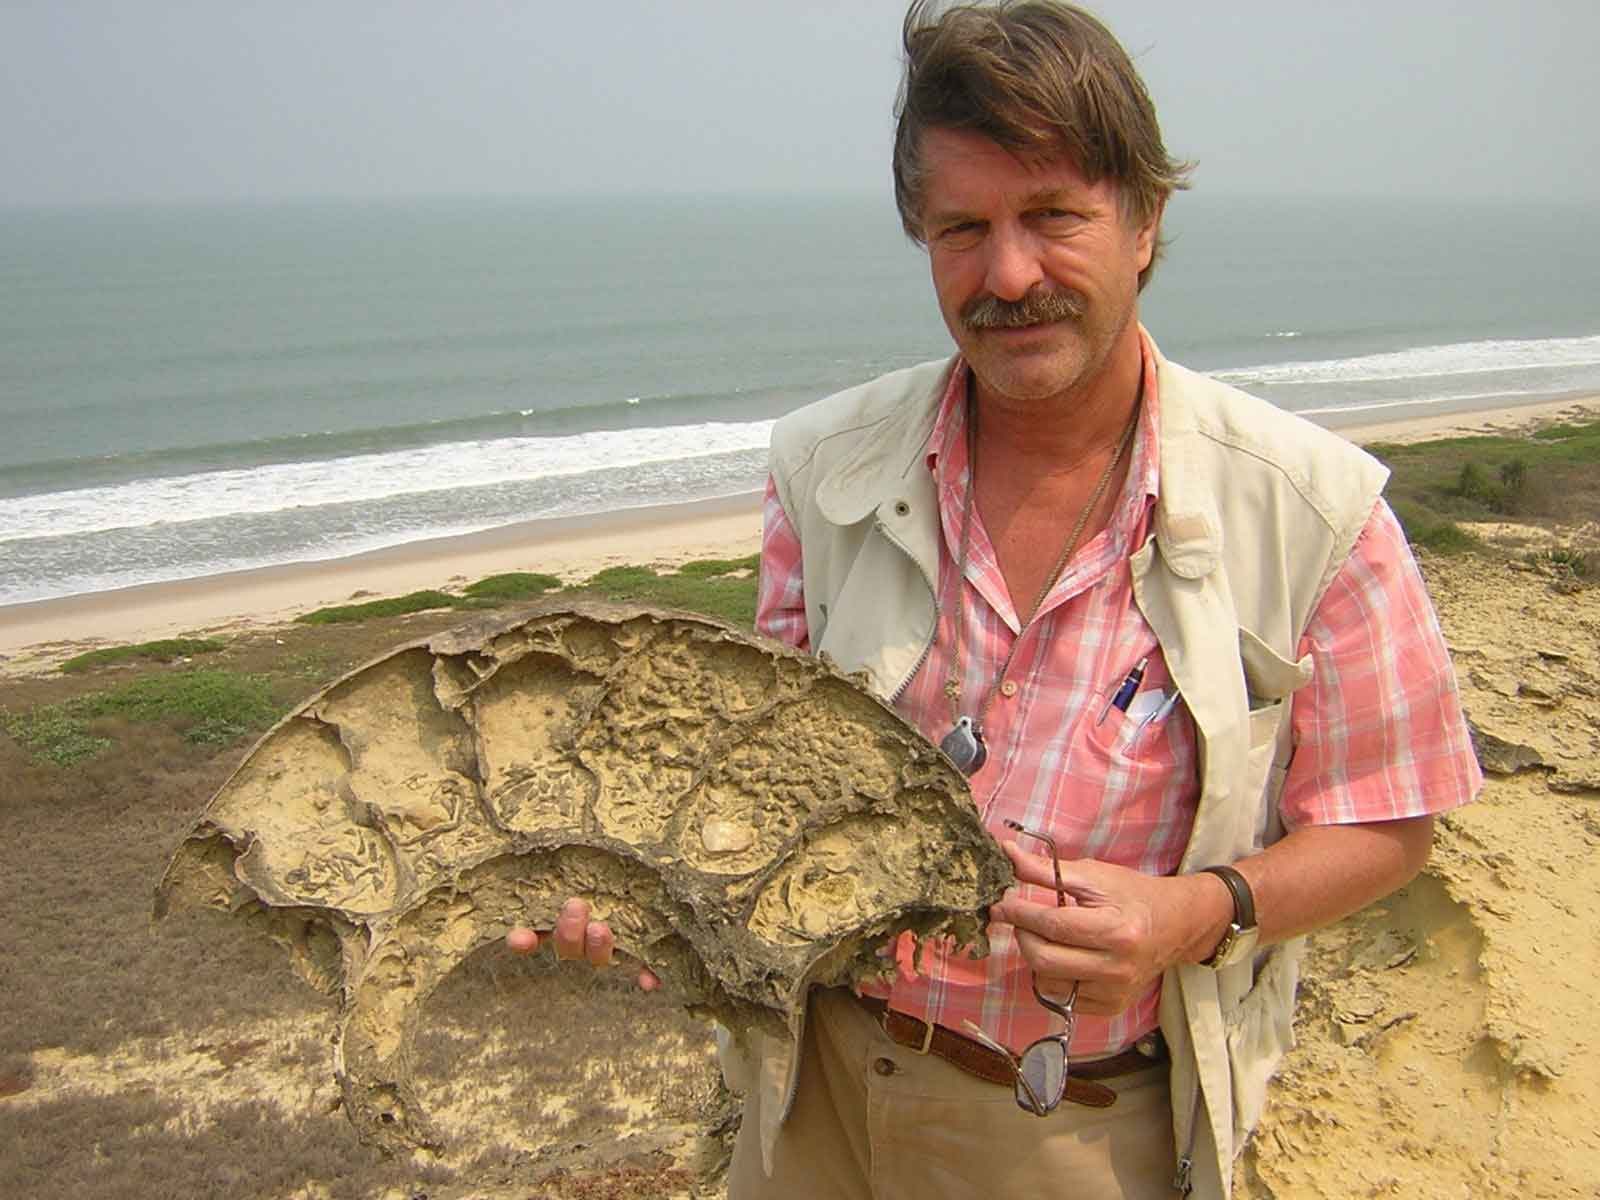 An Angola Field Group member holds a Giant Cretaceous-age fossilized ammonite unearthed along Angolan coast